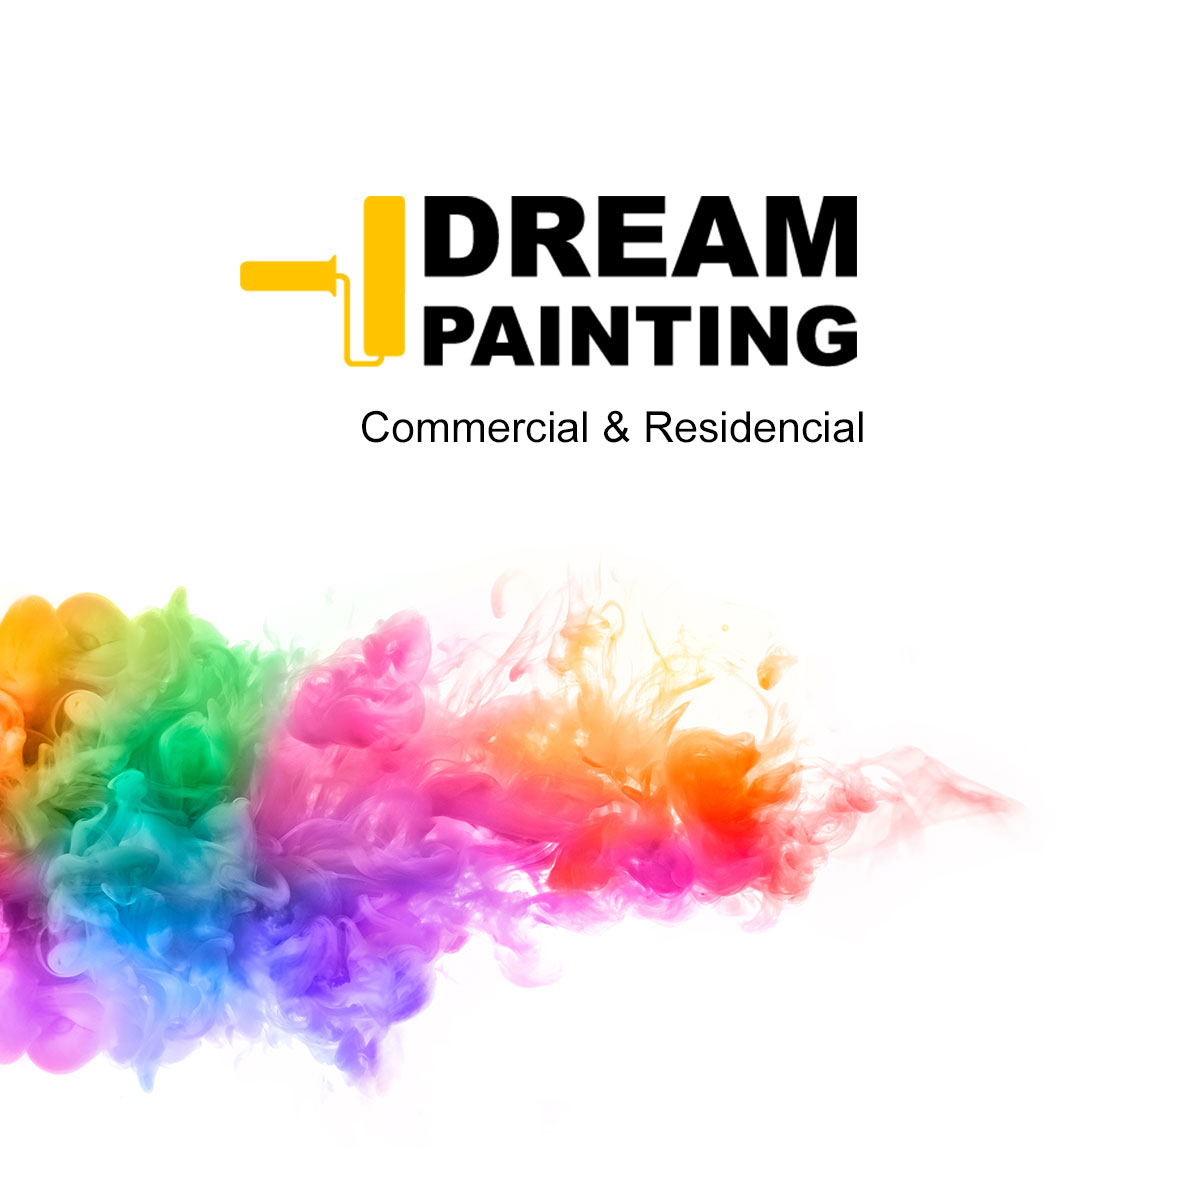 DreamPainting Commercial Residential